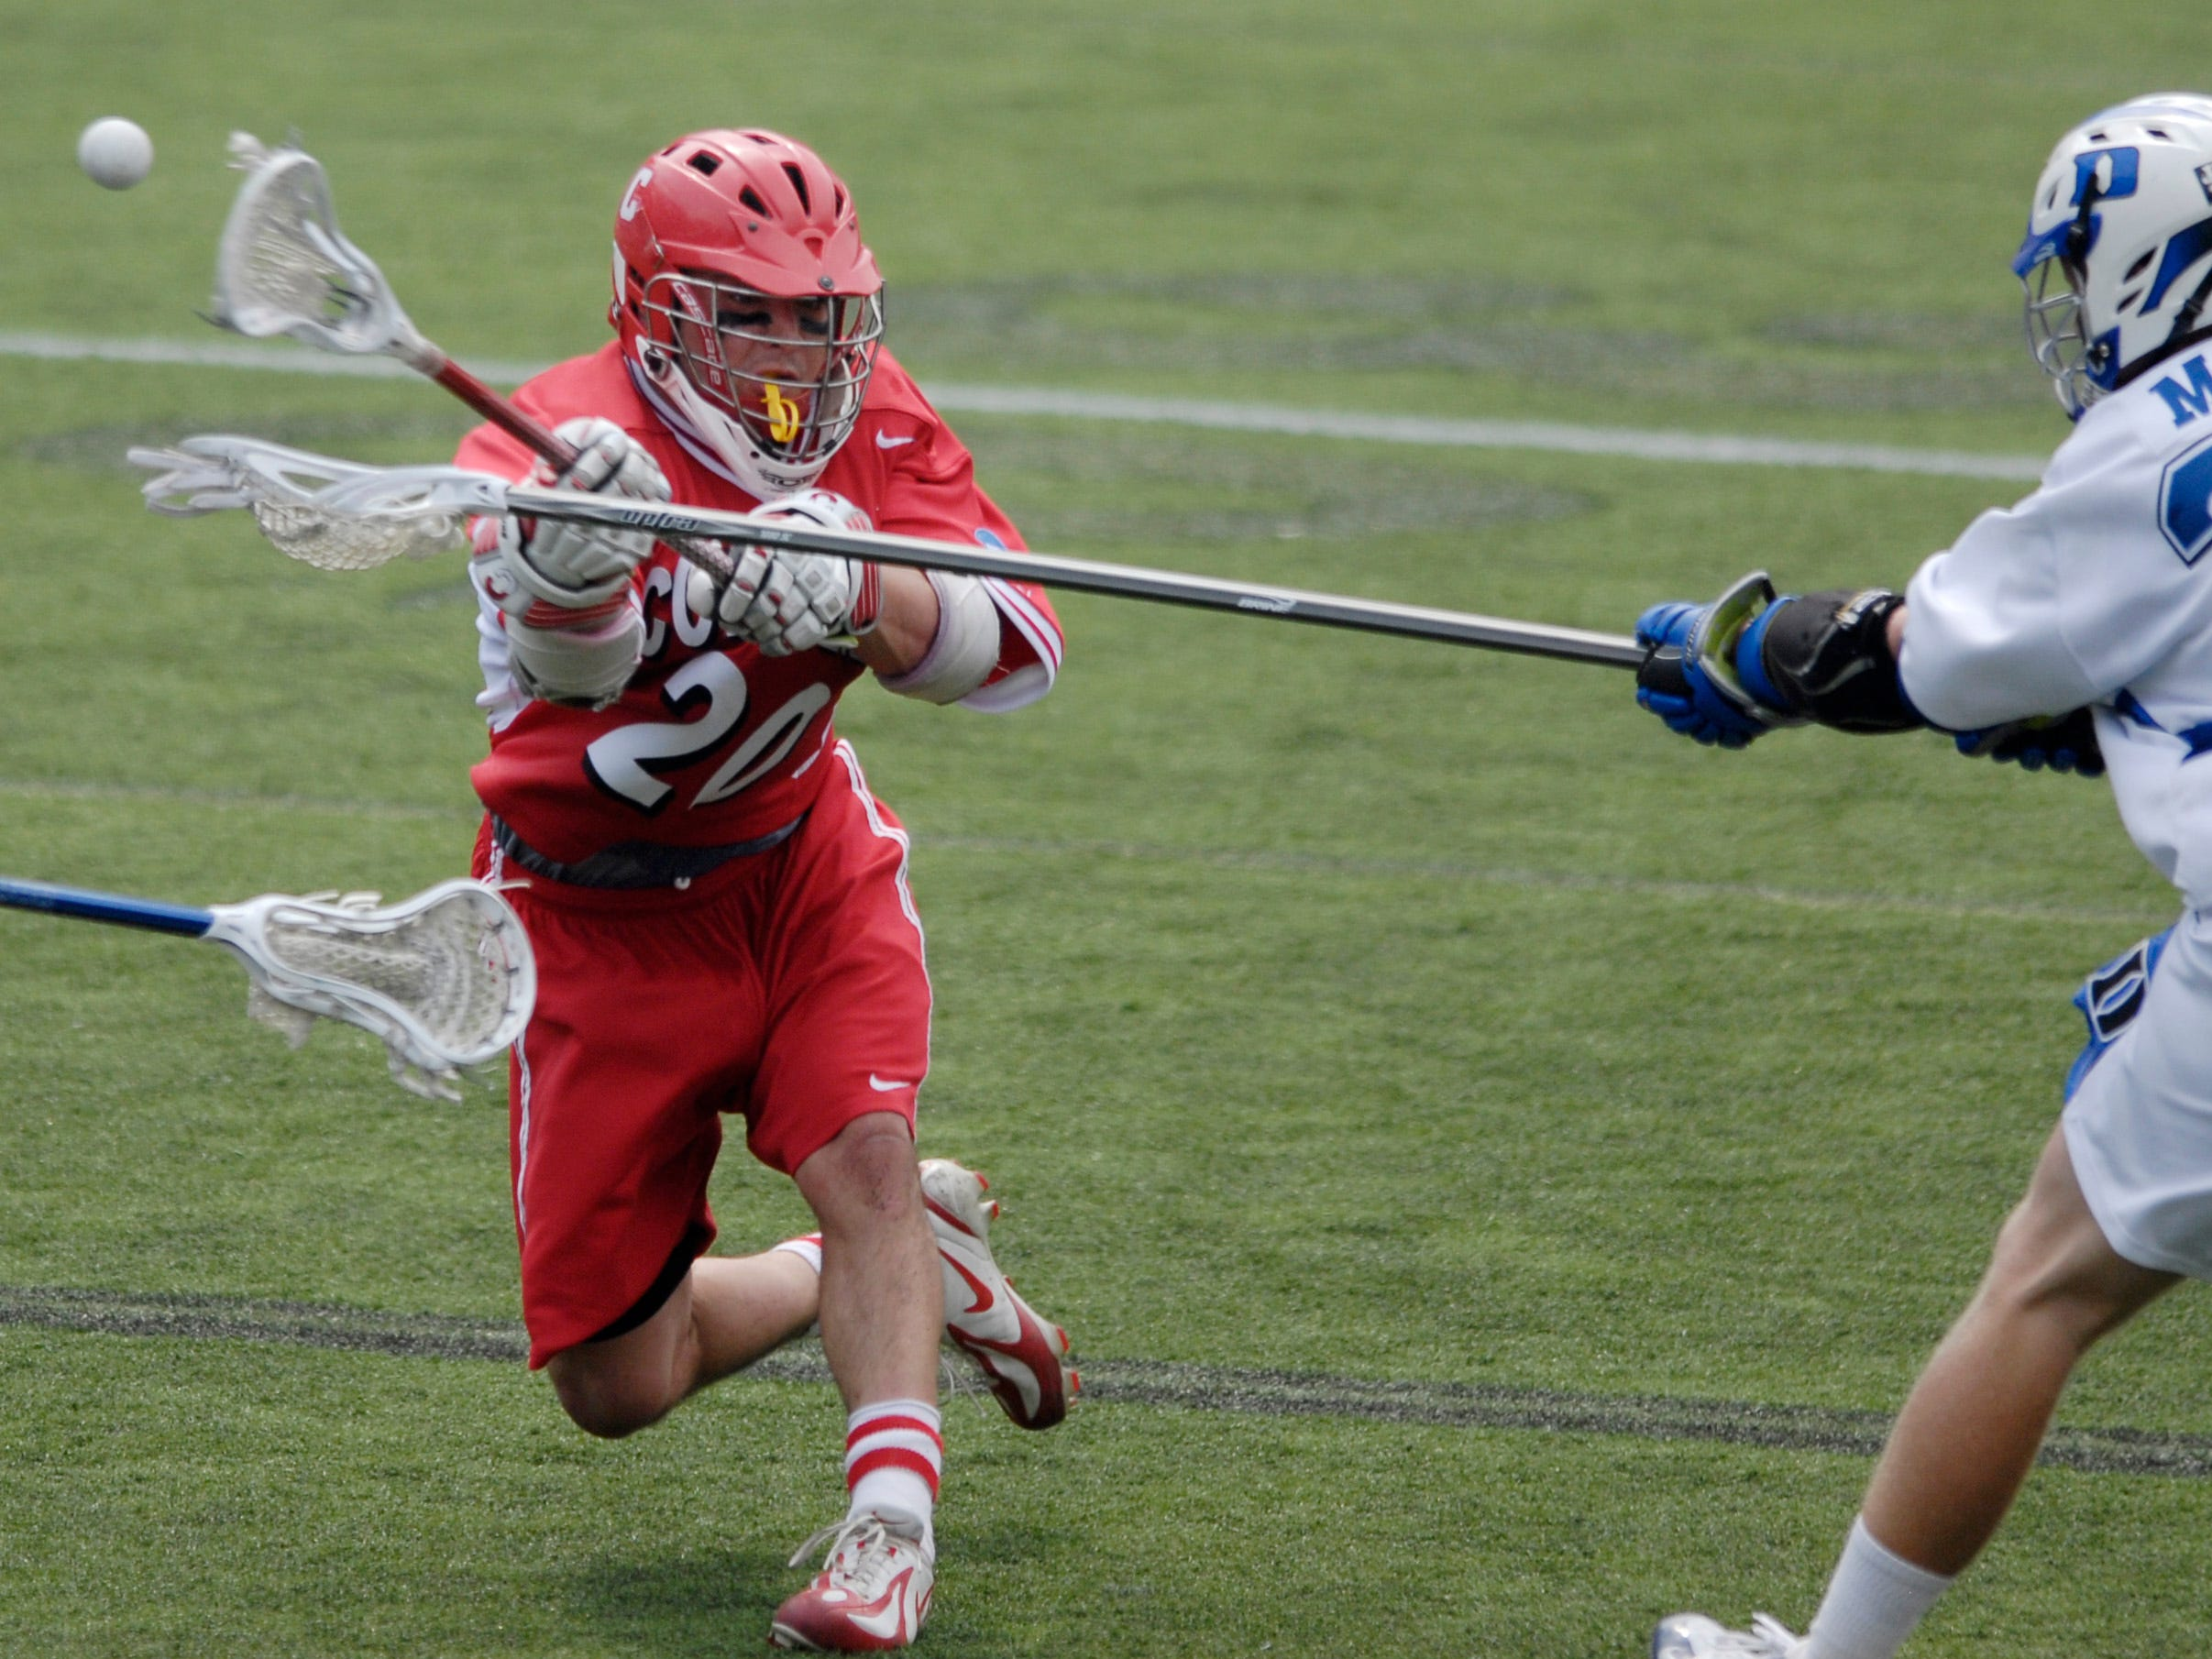 Cornell's John Glynn (20) takes a shot against Parker McKee (35) Duke's during a division one NCAA lacrosse semifinal game, Saturday, May 26, 2007, in Baltimore.